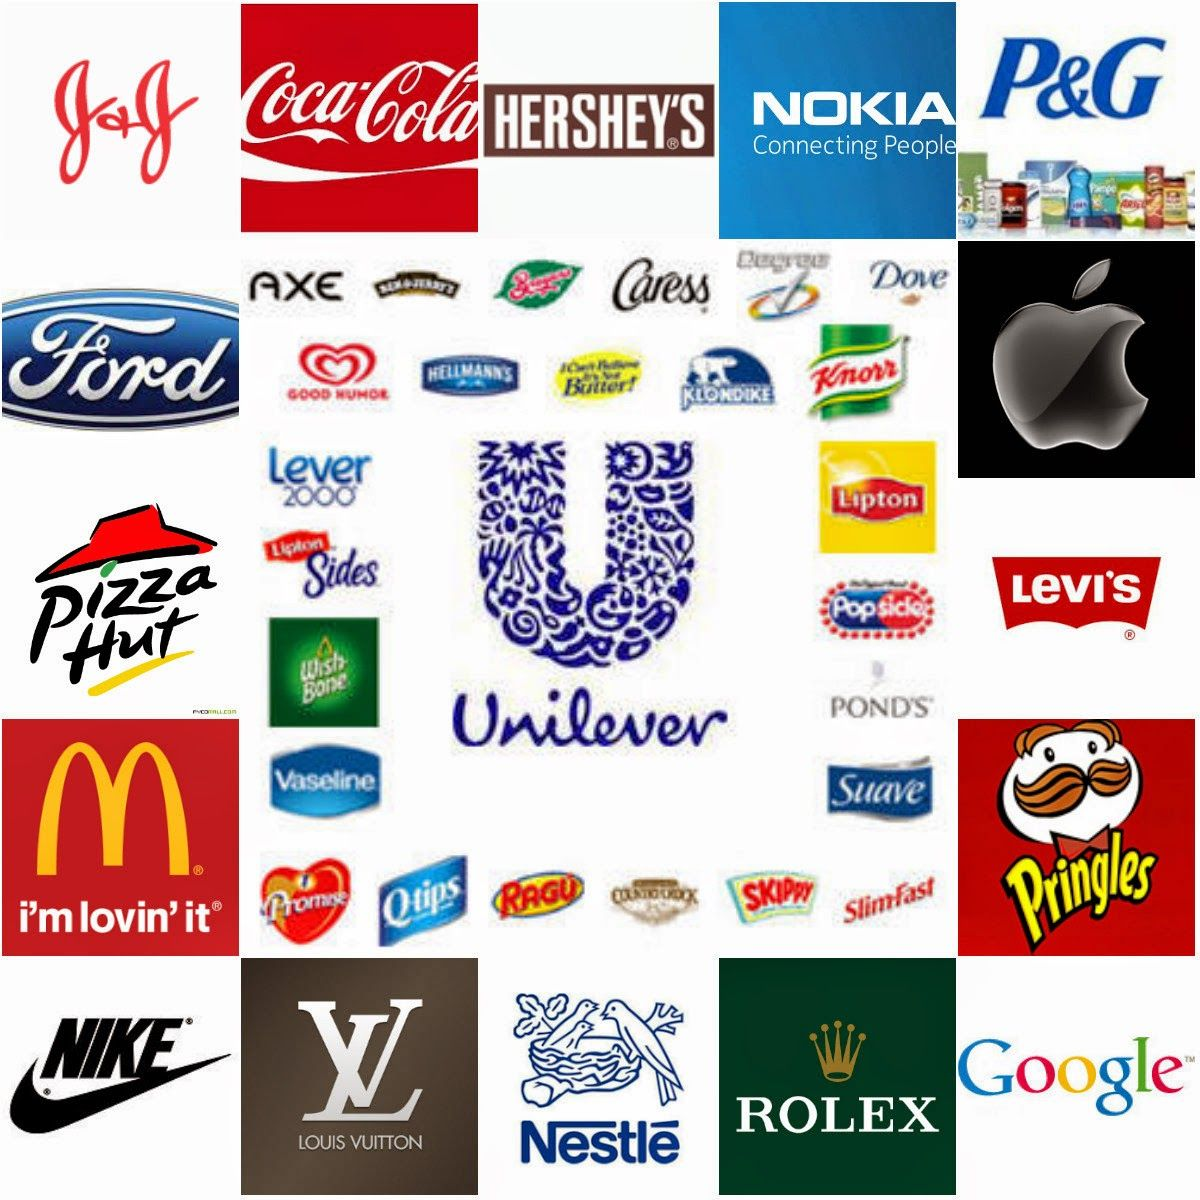 Amazing Collage Brand Logos Images With Names Brand